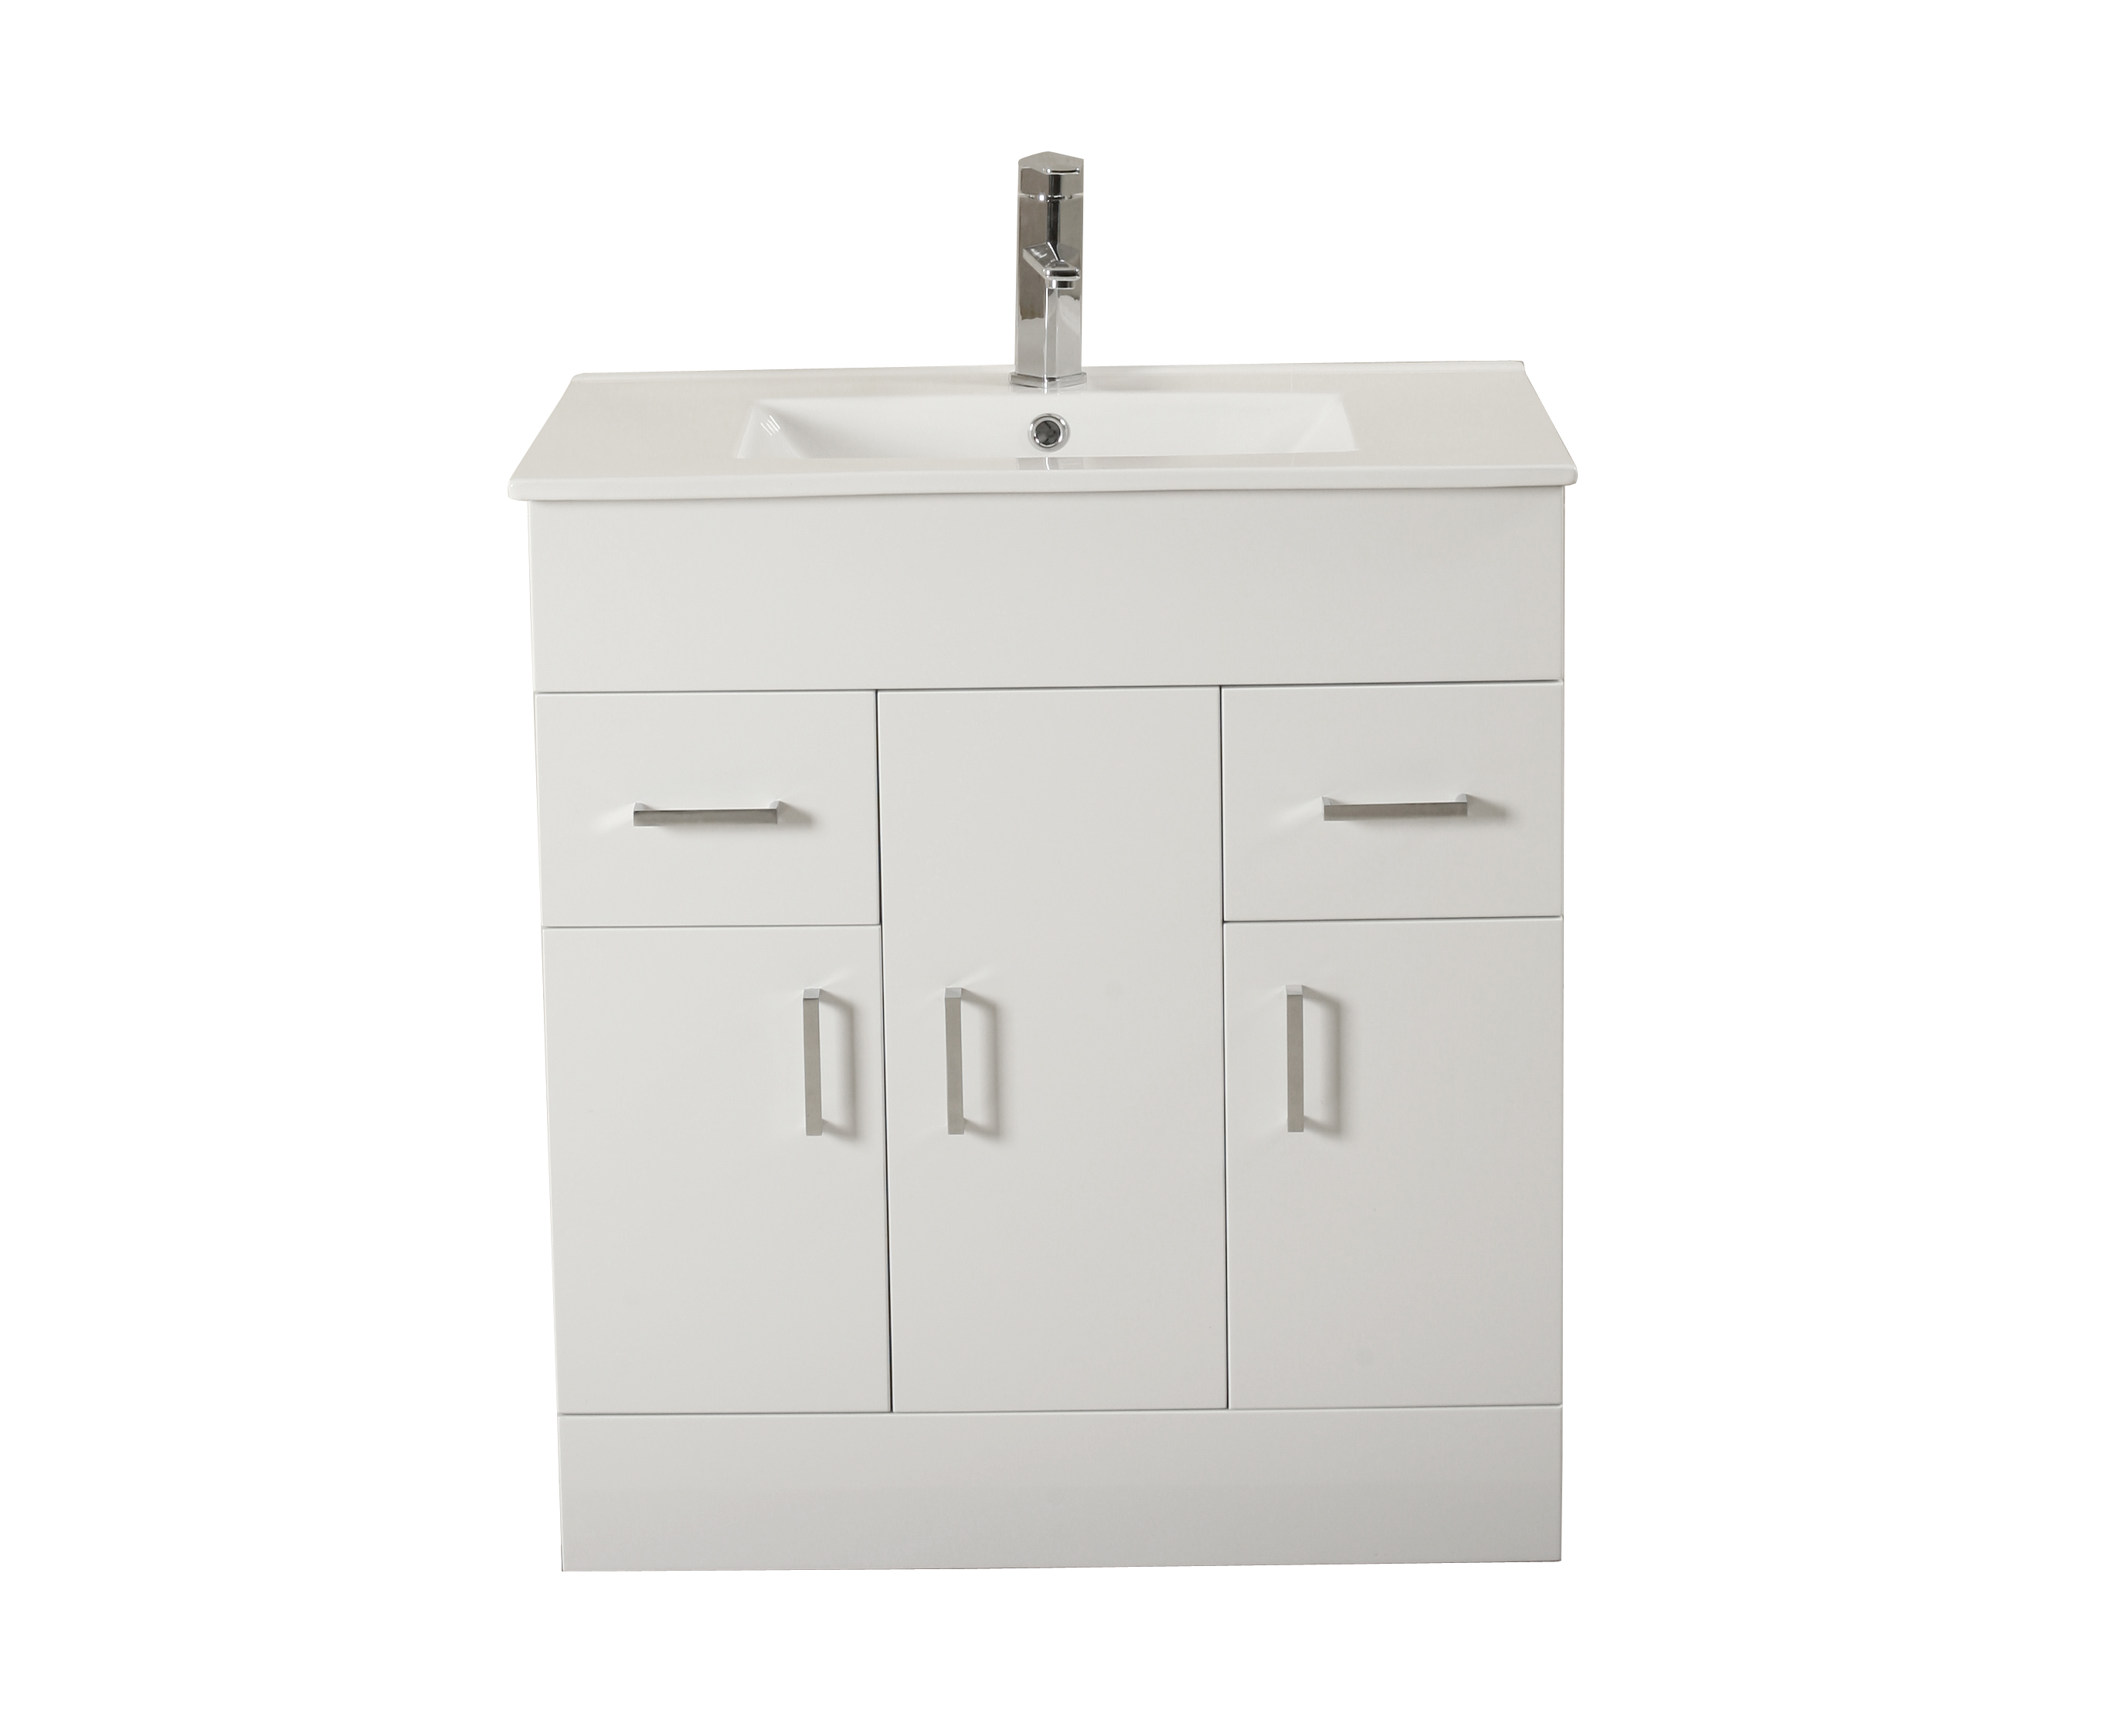 800mm Square Modern Turin Vanity Unit Ceramic Basin Sink